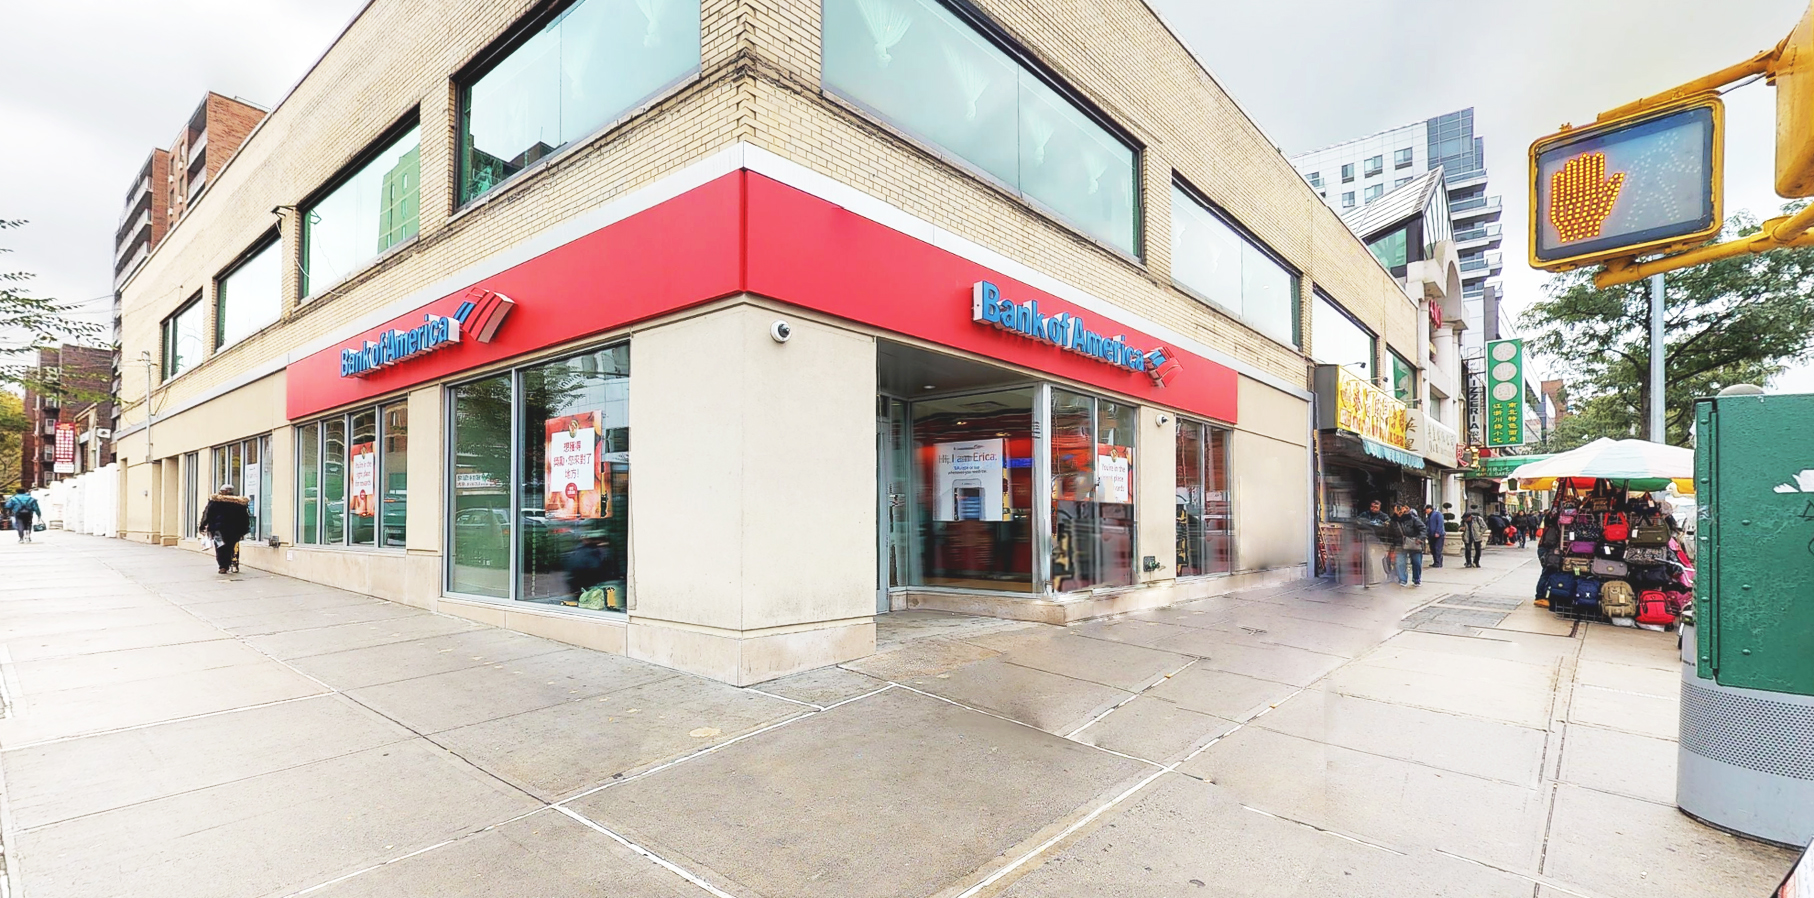 Bank of America financial center with walk-up ATM   4201 Main St, Flushing, NY 11355